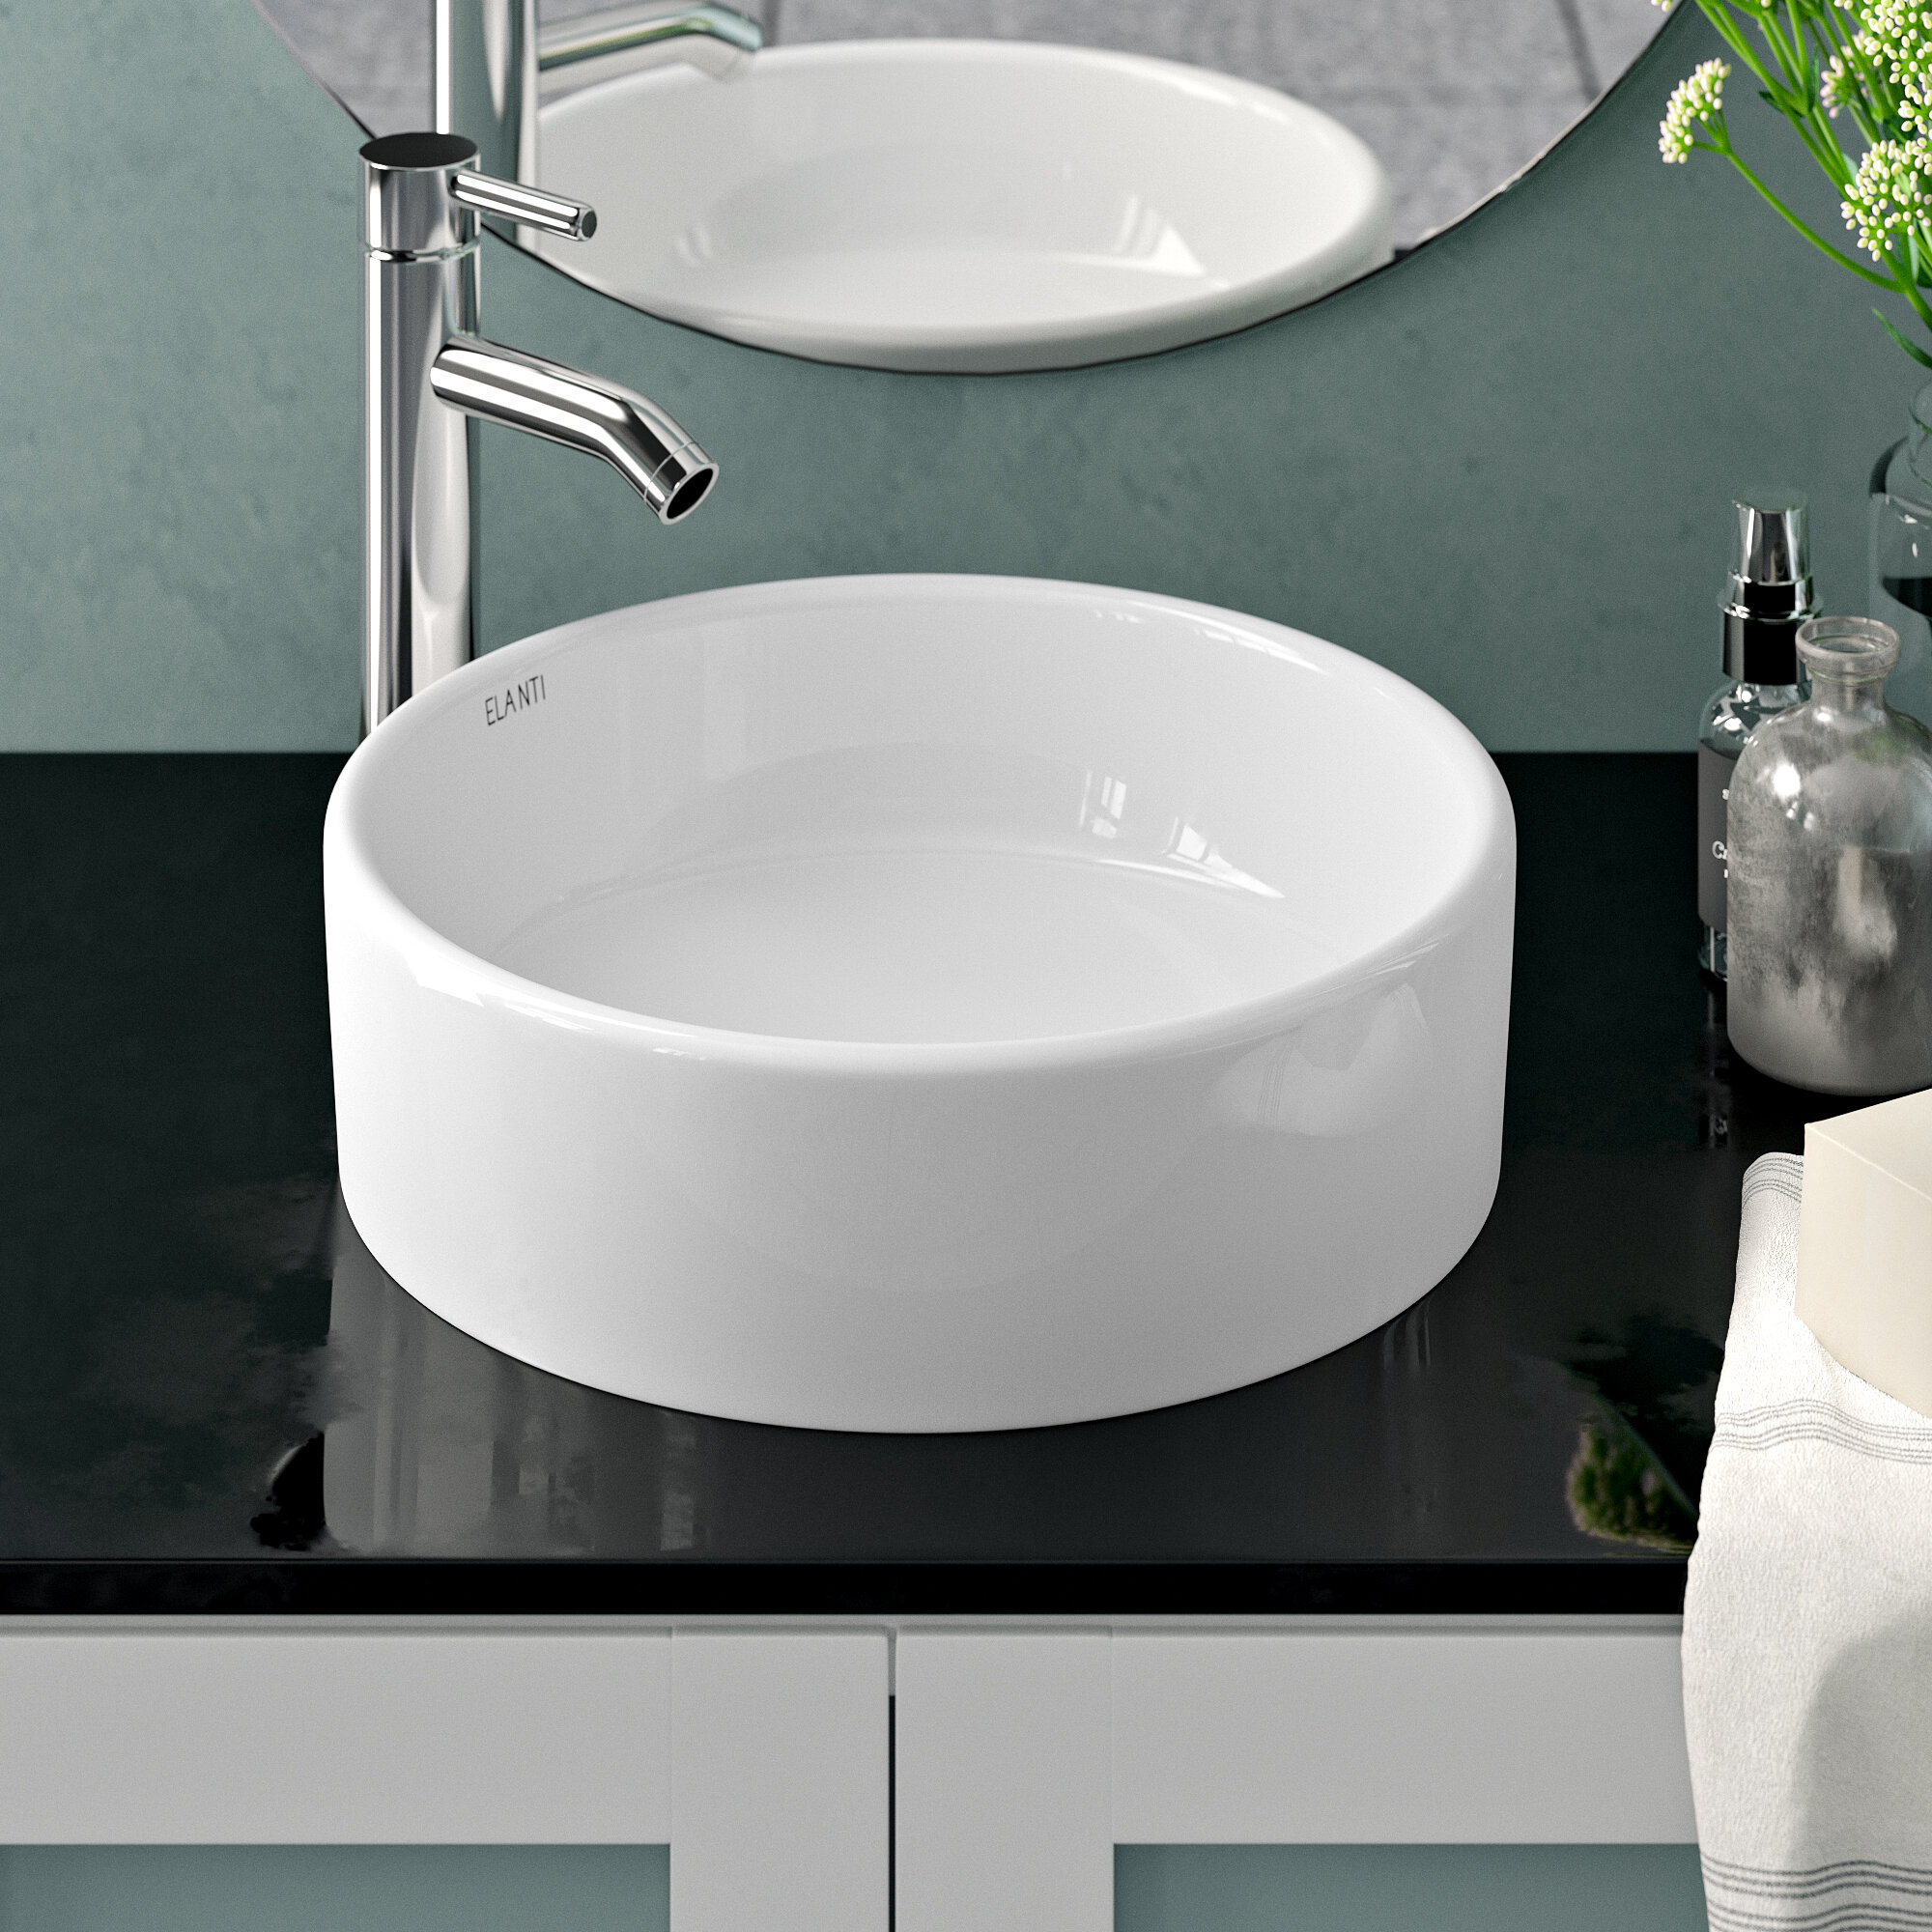 Elanti Ceramic Circular Vessel Bathroom Sink Reviews Wayfair